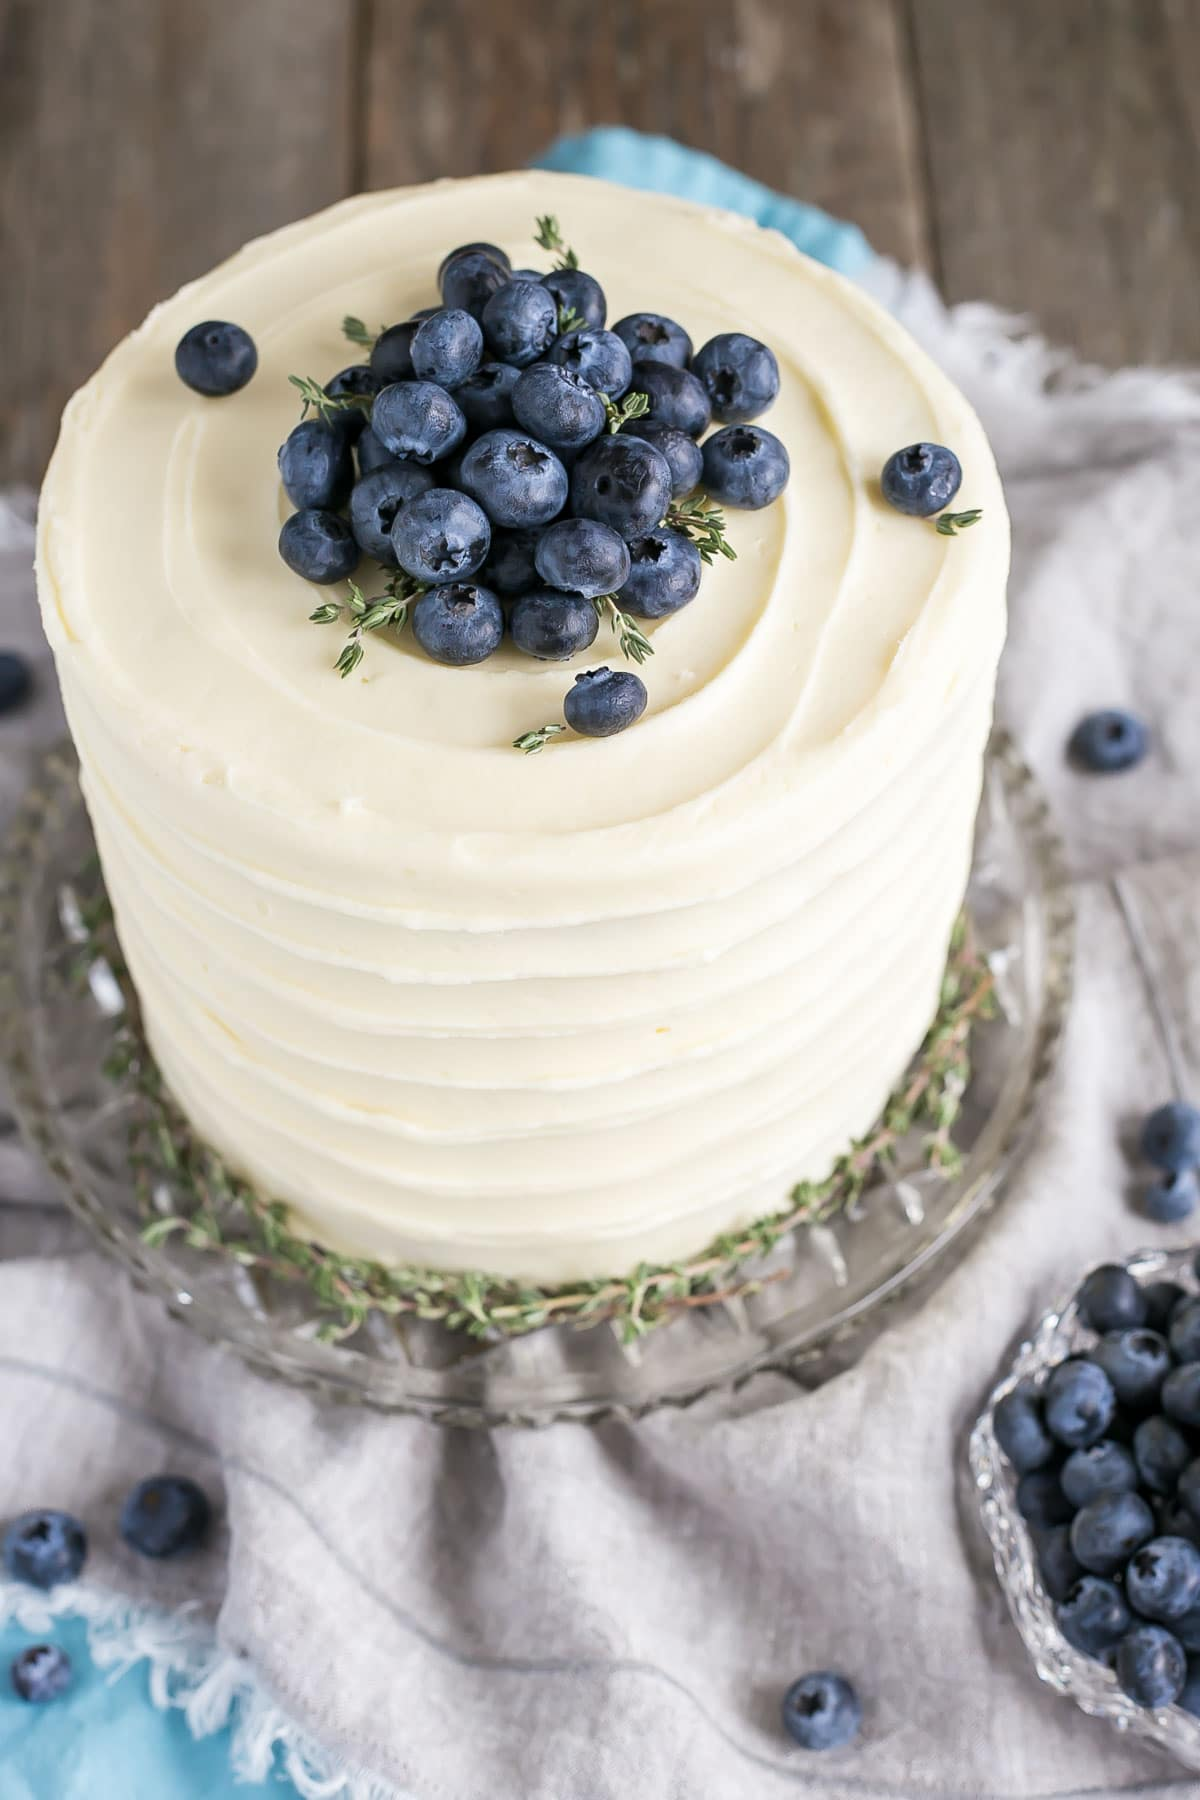 Easy banana cake recipe with blueberries and cream cheese frosting.